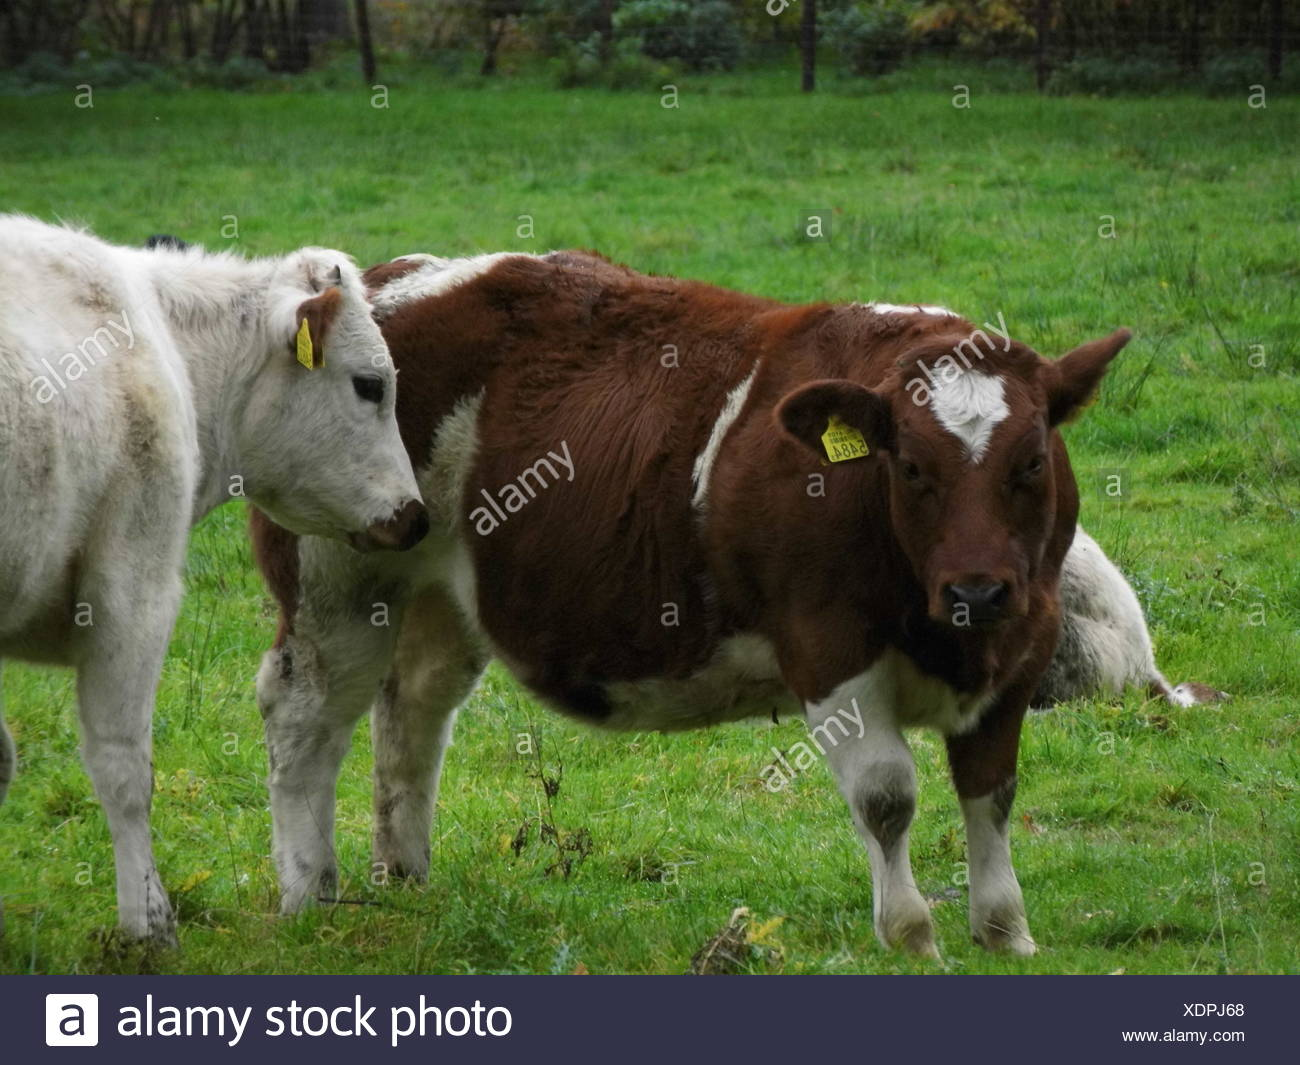 Cows On Grass Area - Stock Image